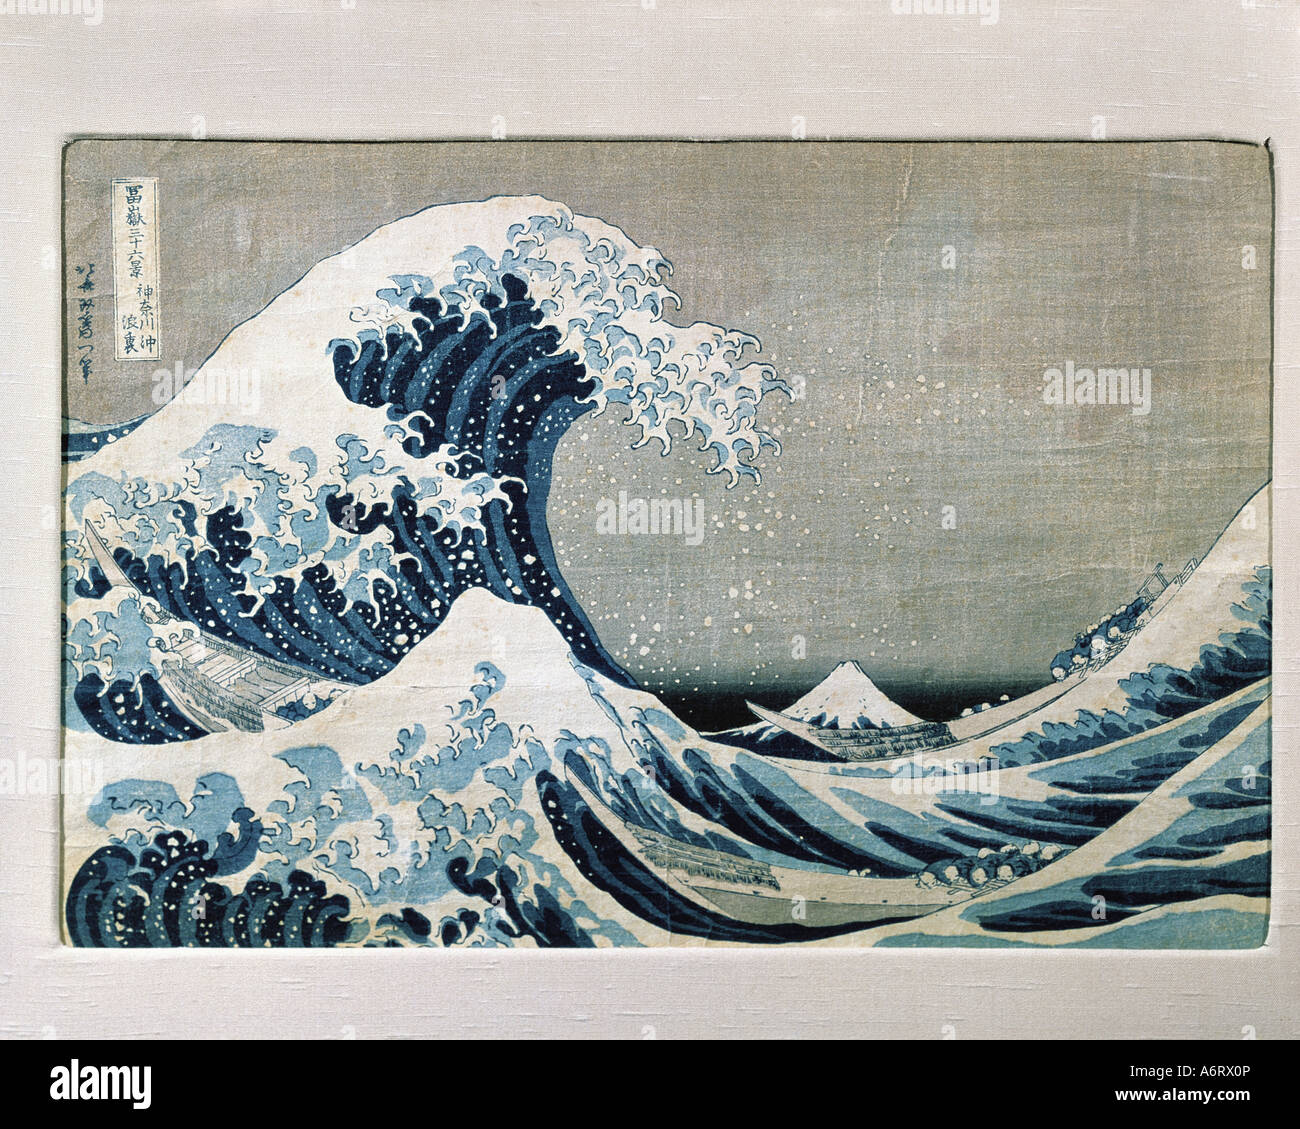 'fine arts, Katsushika Hokusai (1760 - 1849), 'Beneath the Great Wave off Kanagawa', woodcut, circa - Stock Image